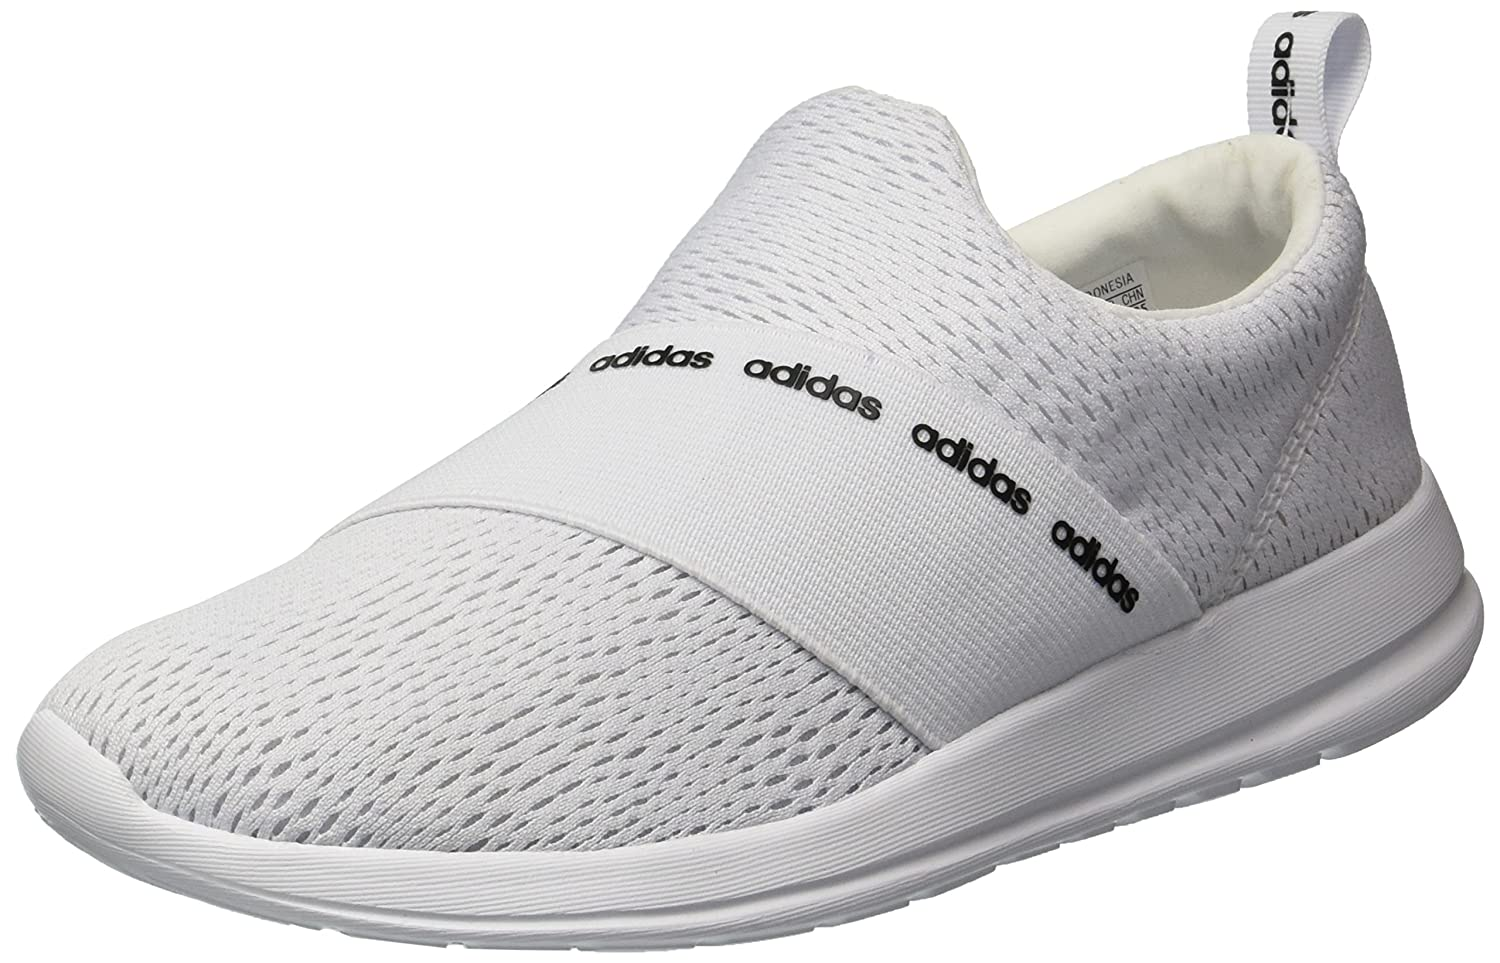 adidas Women's Refine Adapt Running Shoe B071P19HQ8 8 B(M) US|White/White/Grey